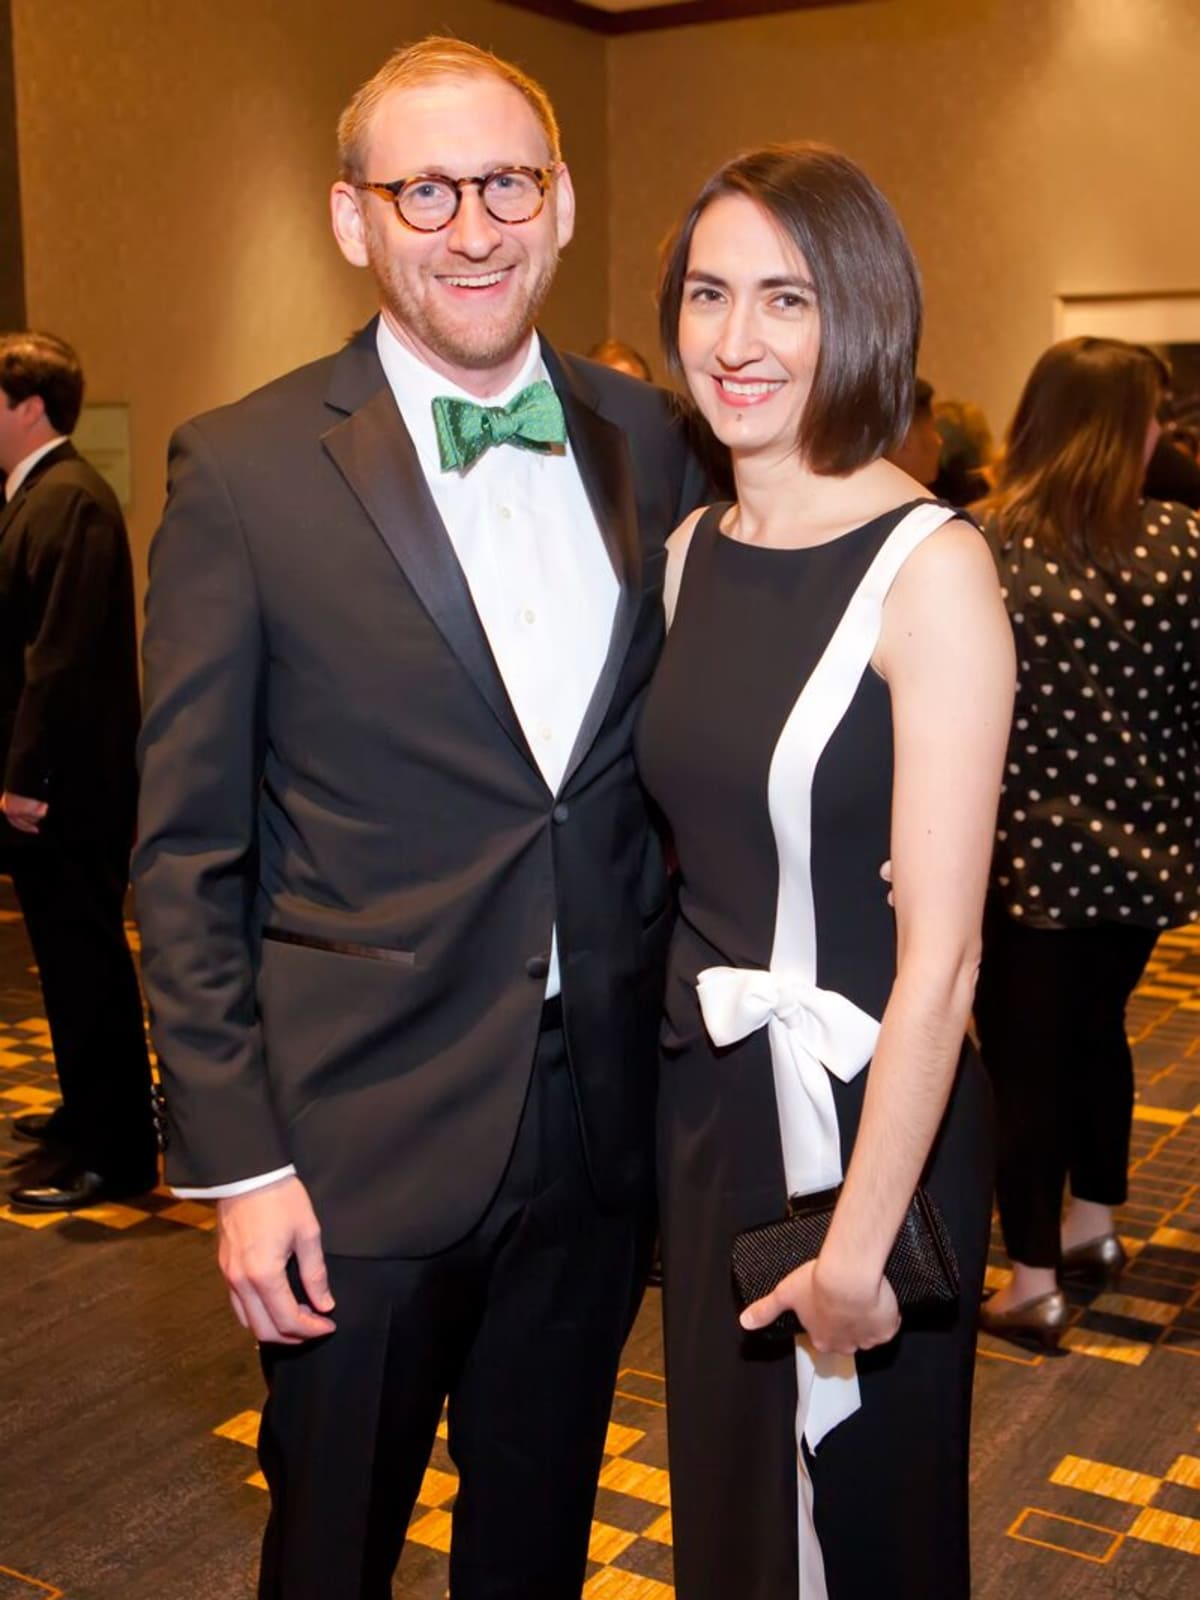 Ed Schneider and Toni Oplt at Planned Parenthood Gala